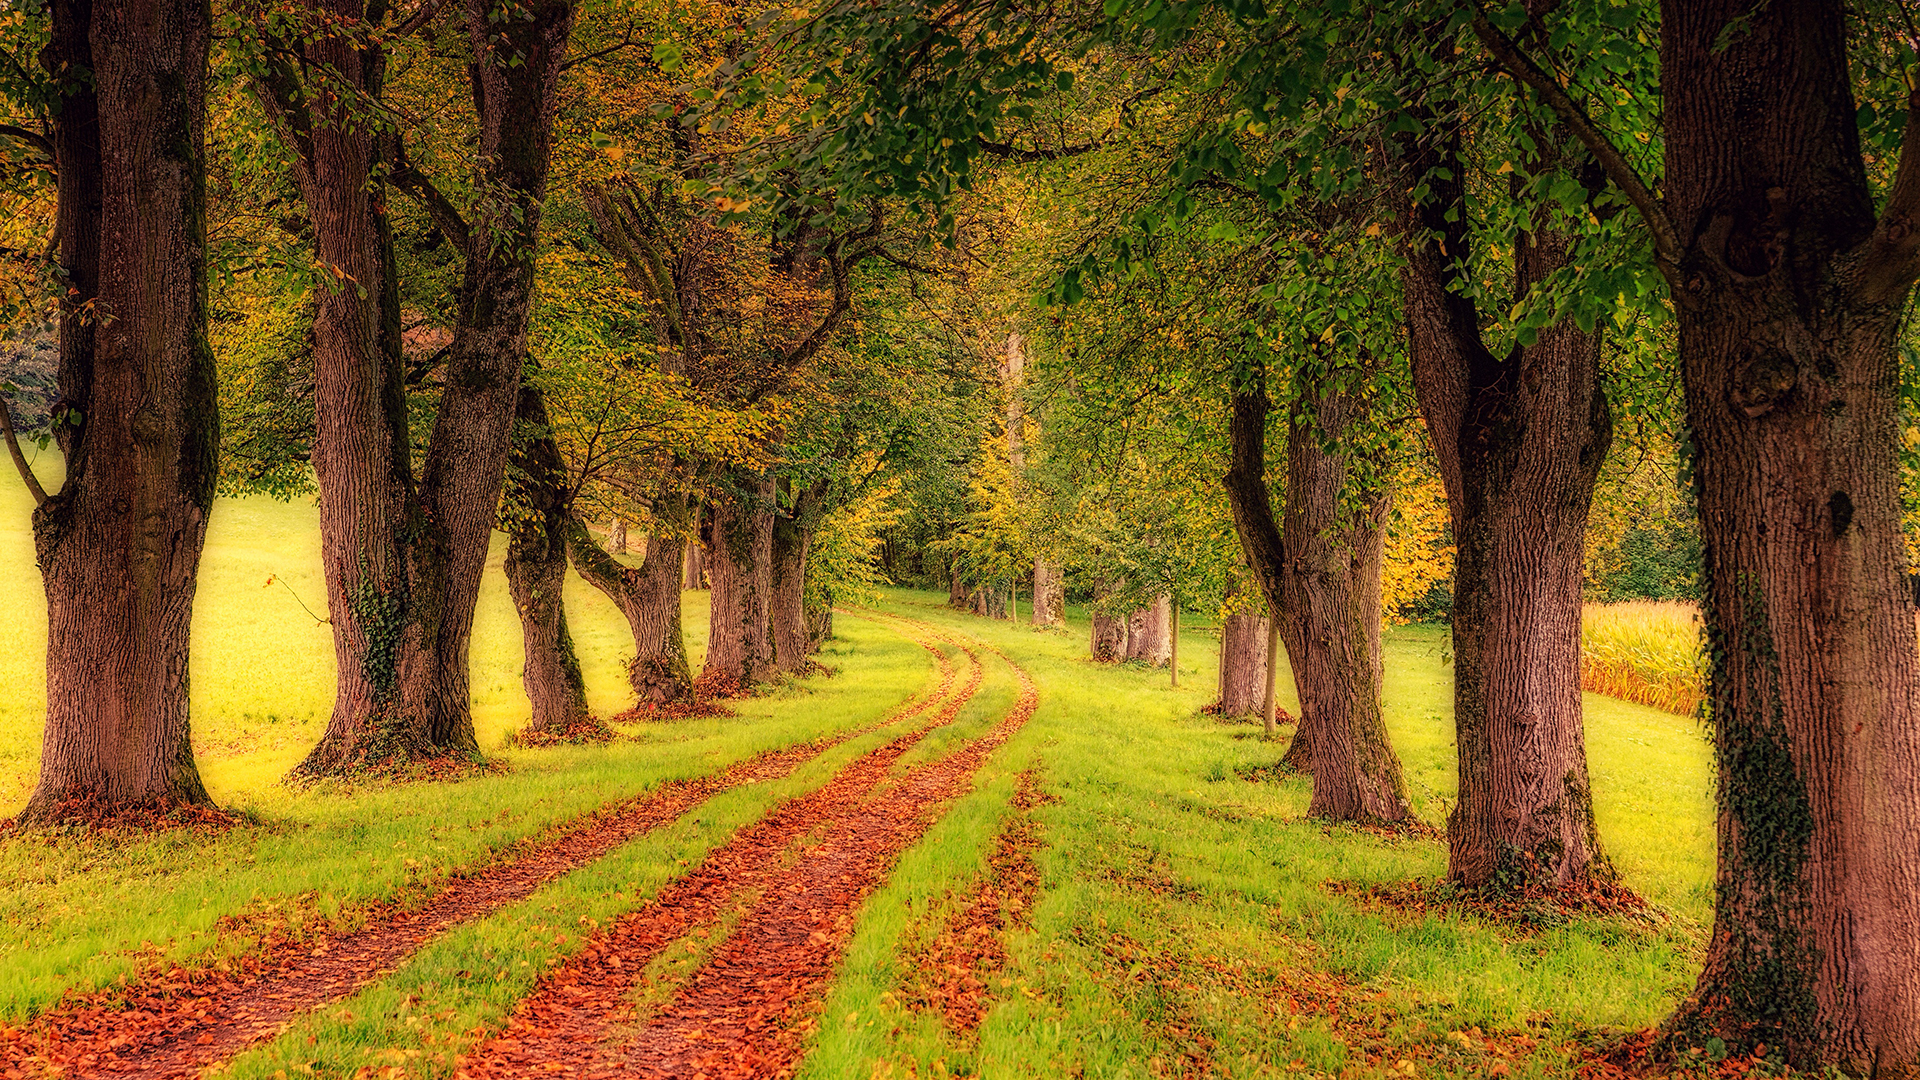 Free green trees 4k chromebook wallpaper ready for download - 4k wallpaper download ...